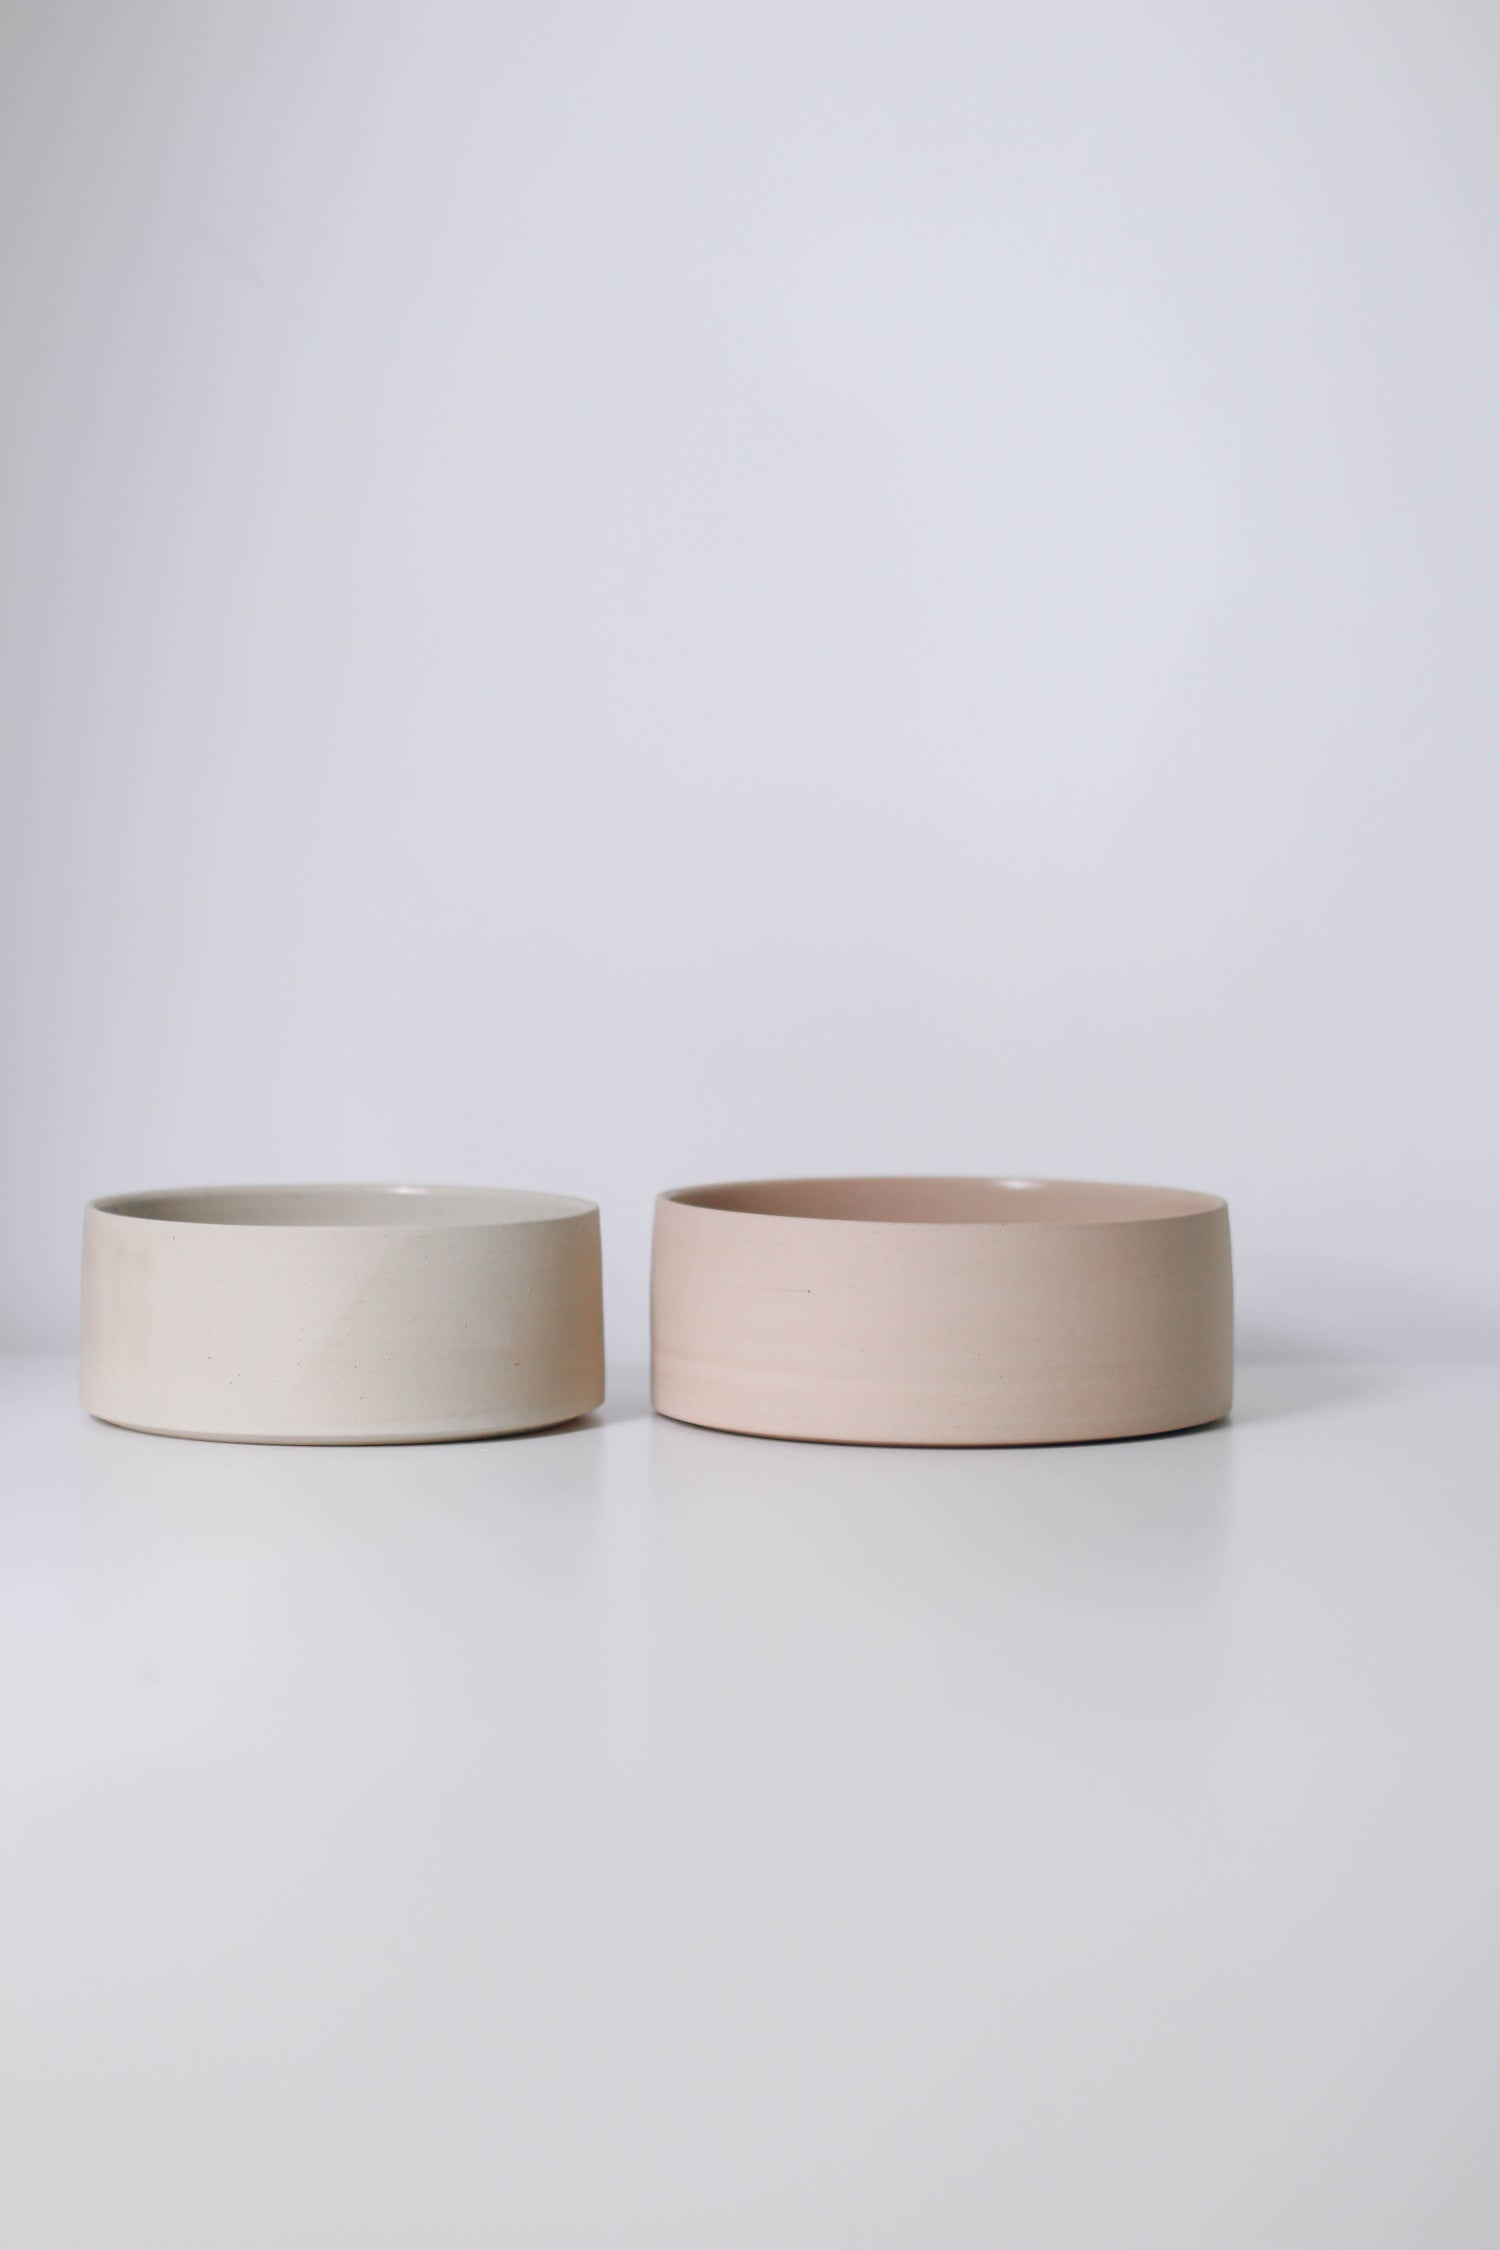 Image of Pair of serving bowls #10